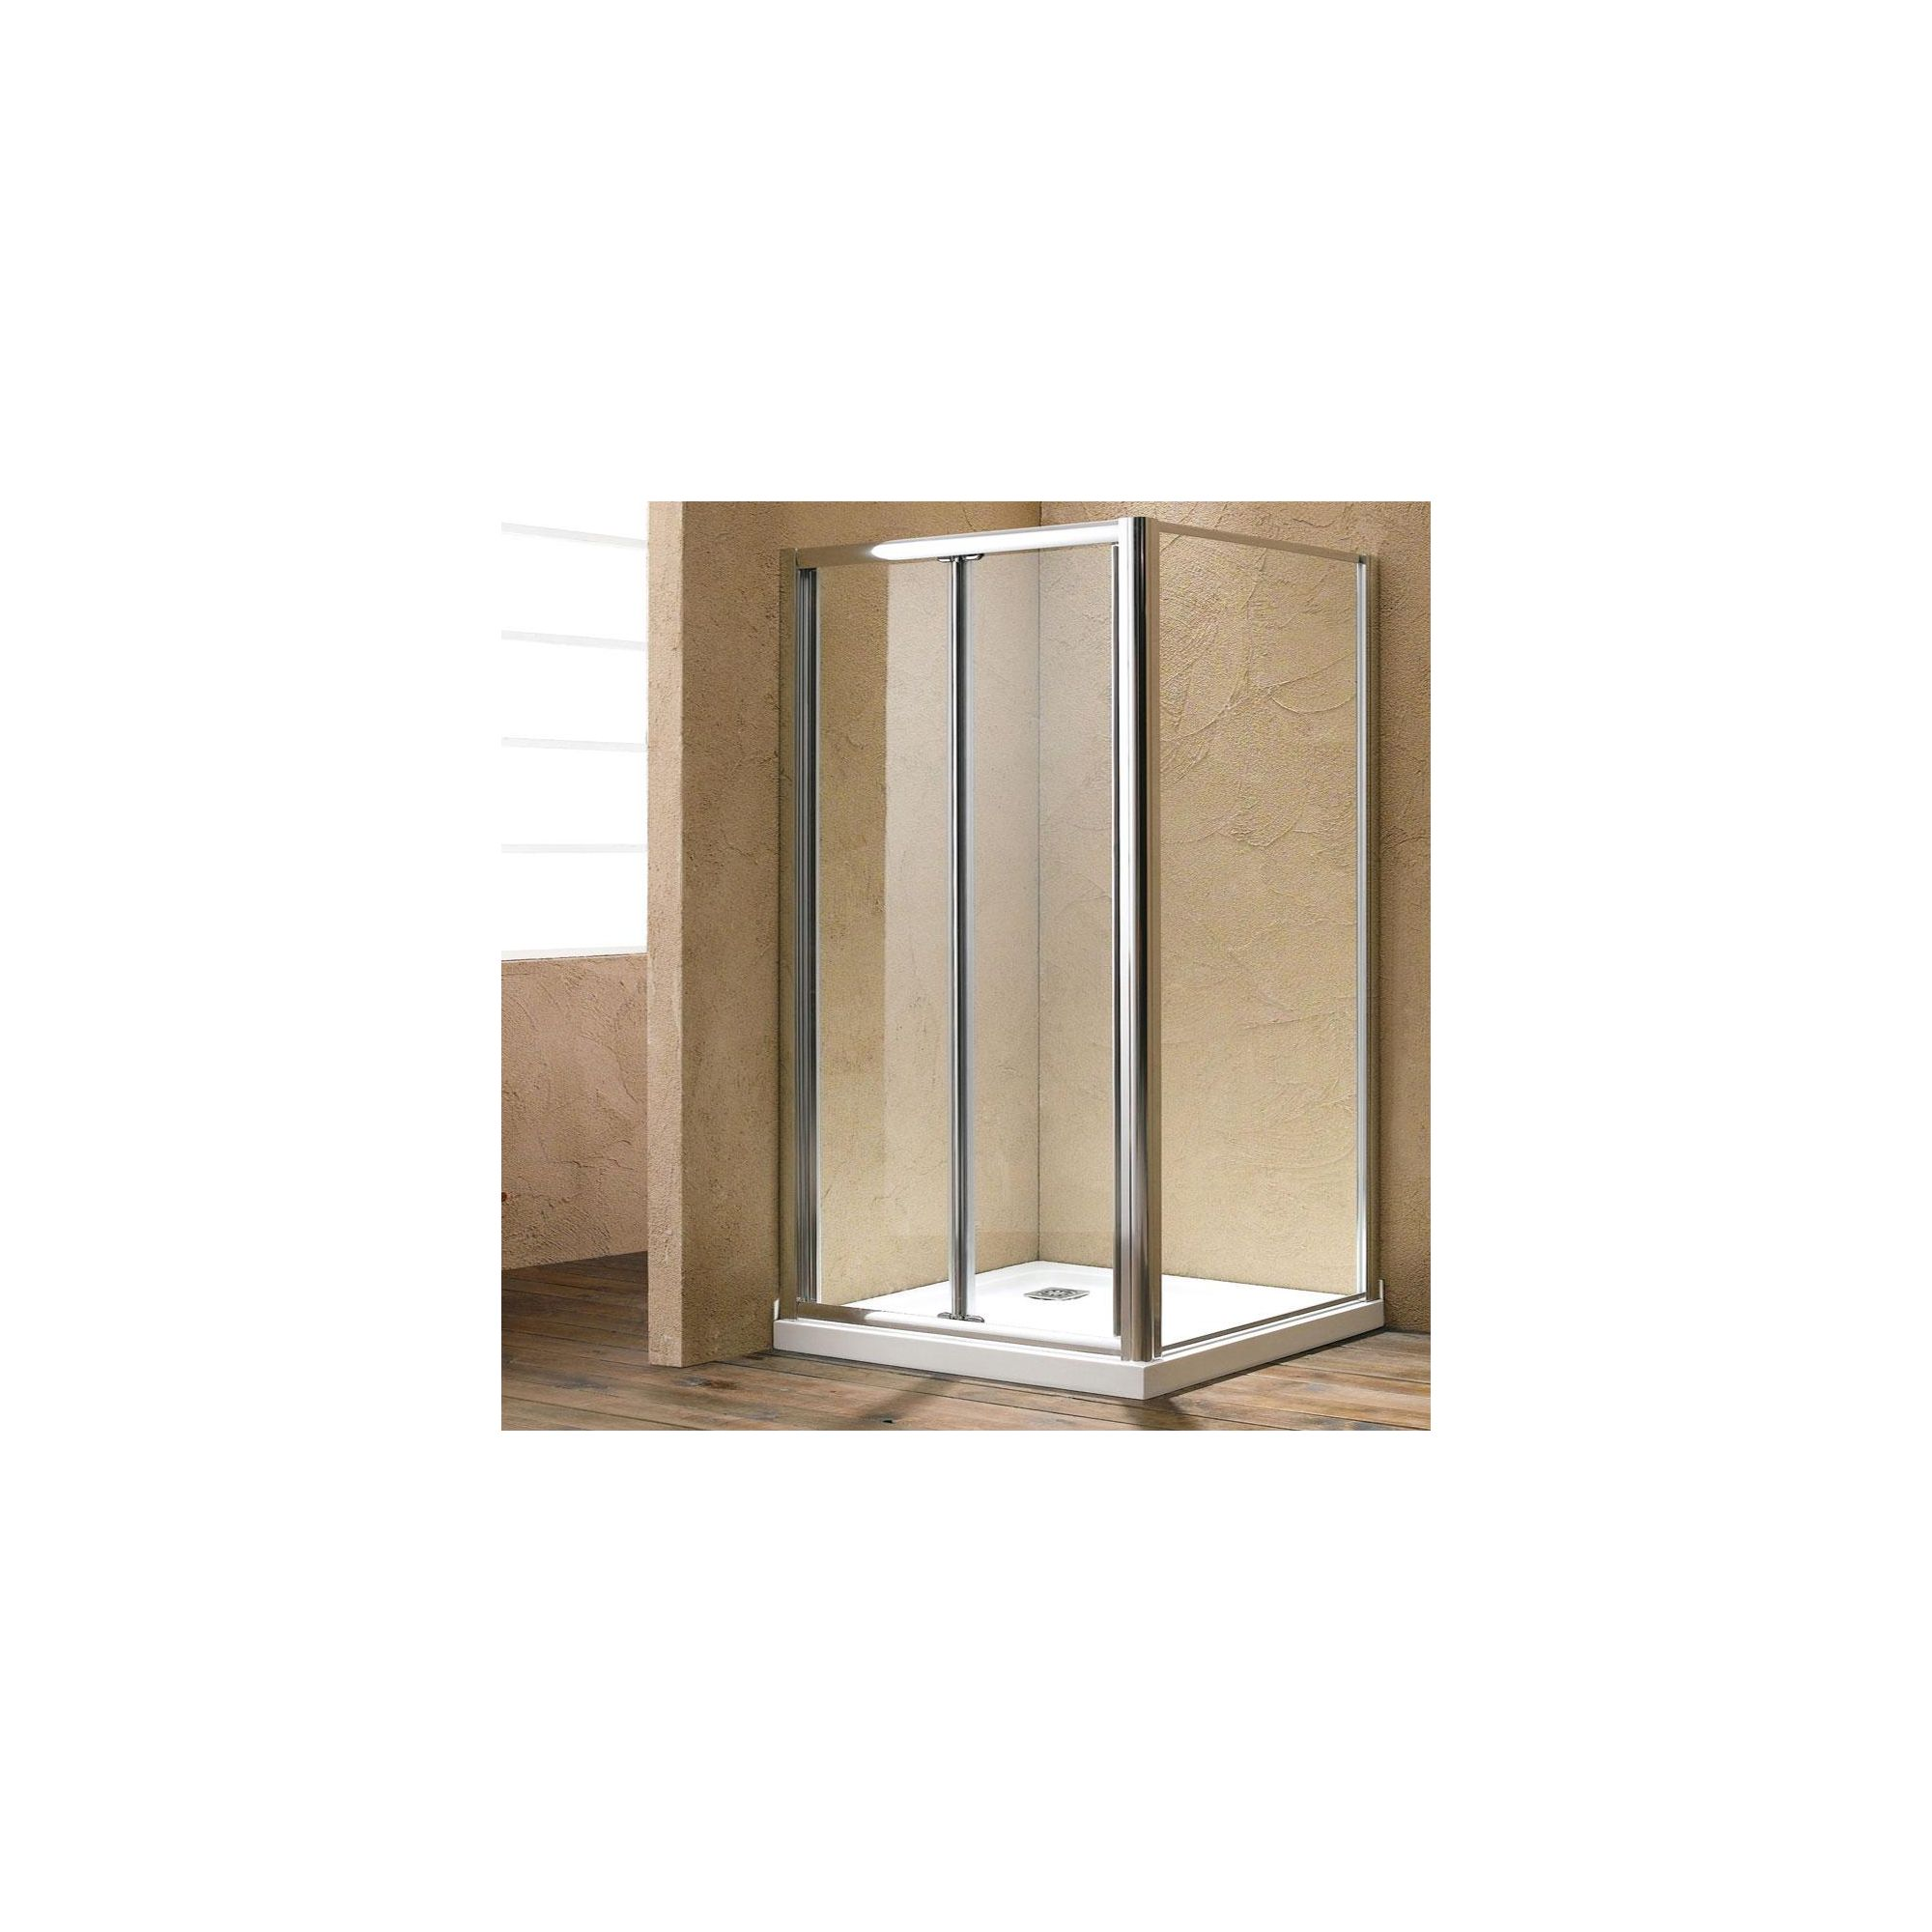 Duchy Style Single Bi-Fold Door Shower Enclosure, 900mm x 900mm, 6mm Glass, Low Profile Tray at Tesco Direct